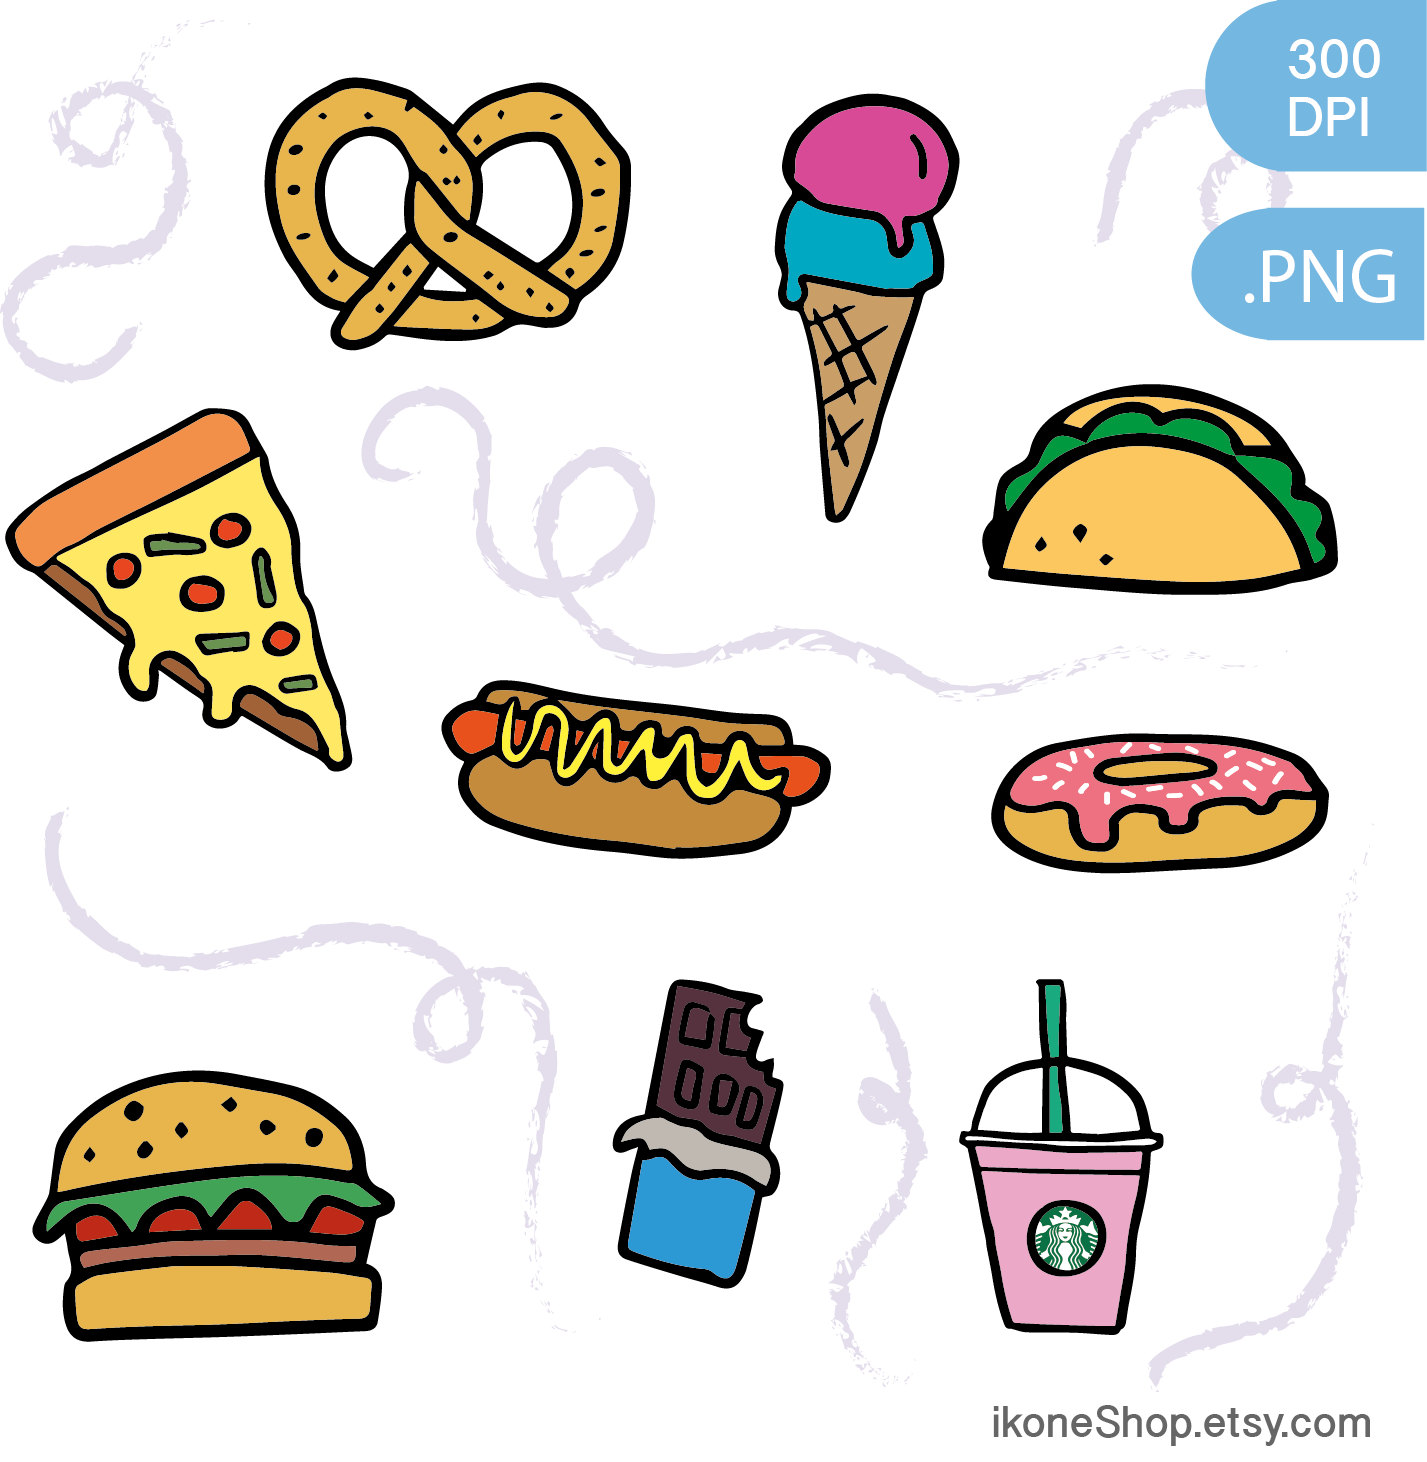 Junk food clipart fast food and sweets digital by ikoneShop.